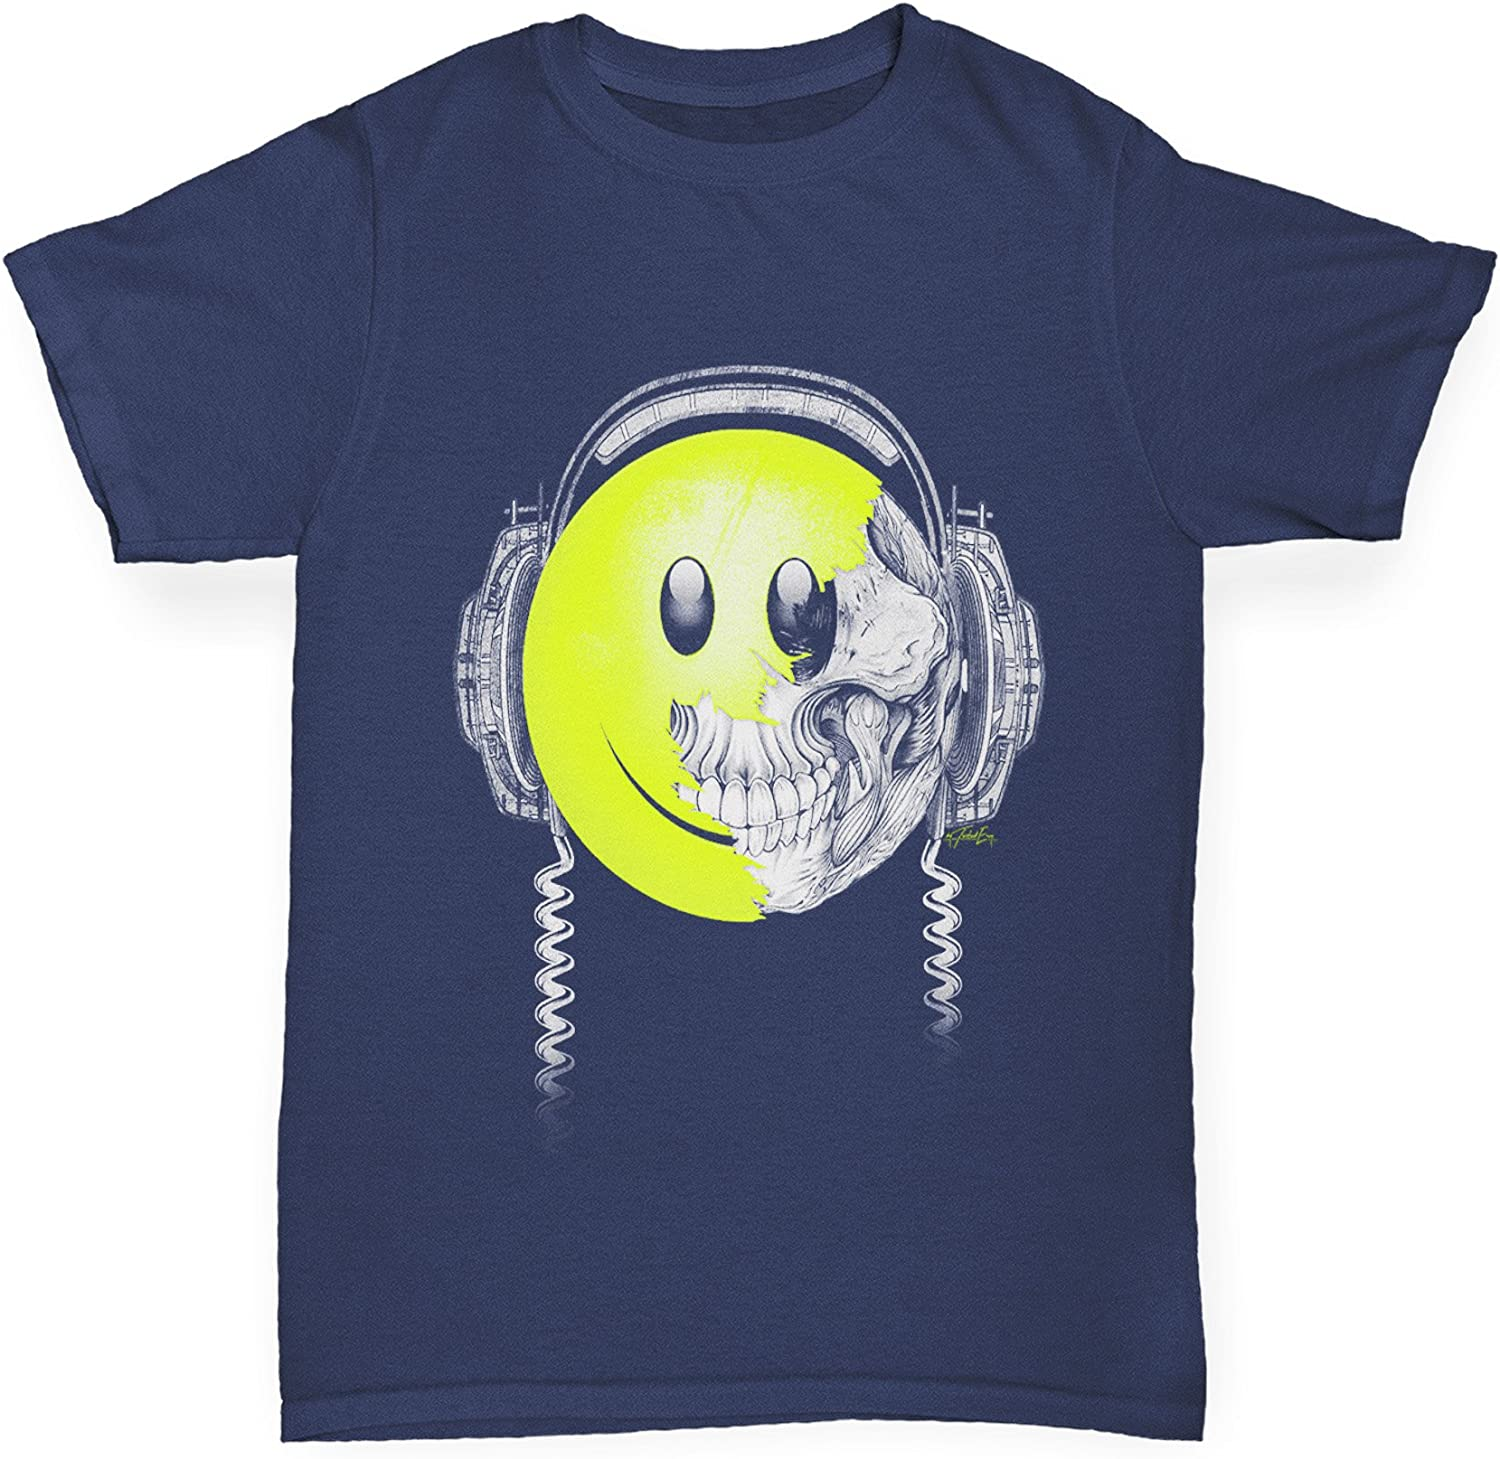 Expression Tees Deadphones Youth T-Shirt